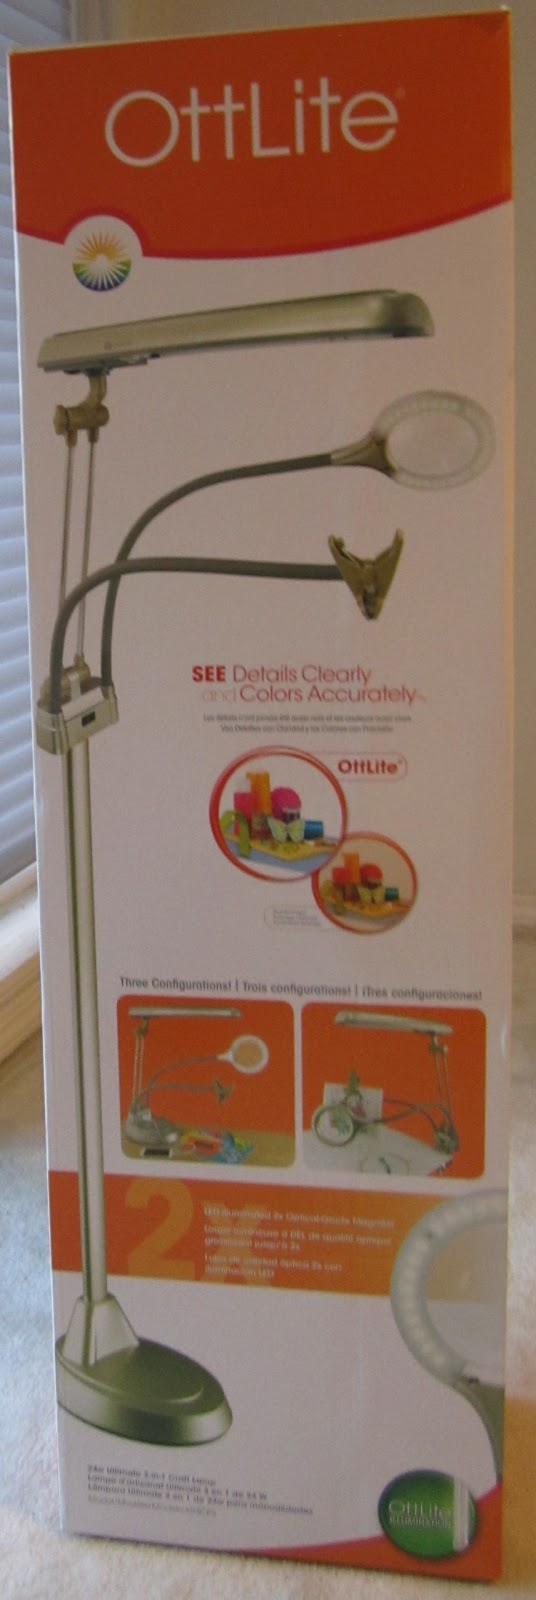 Review of the ottlite 3 in 1 adjustable height craft floor for Ottlite 3 in 1 craft floor lamp